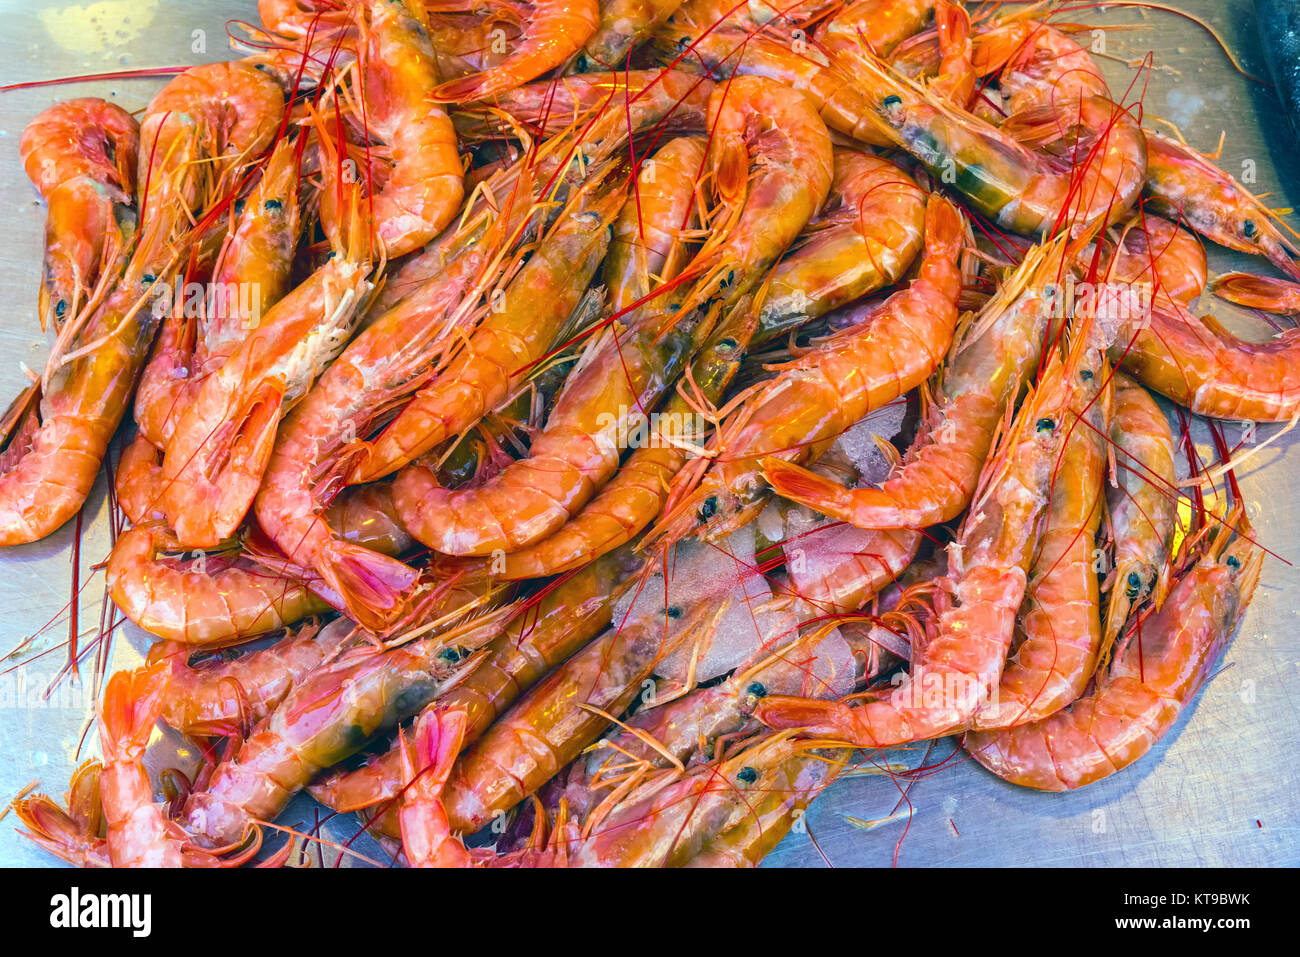 fresh shrimp at a market in palermo,sicily - Stock Image